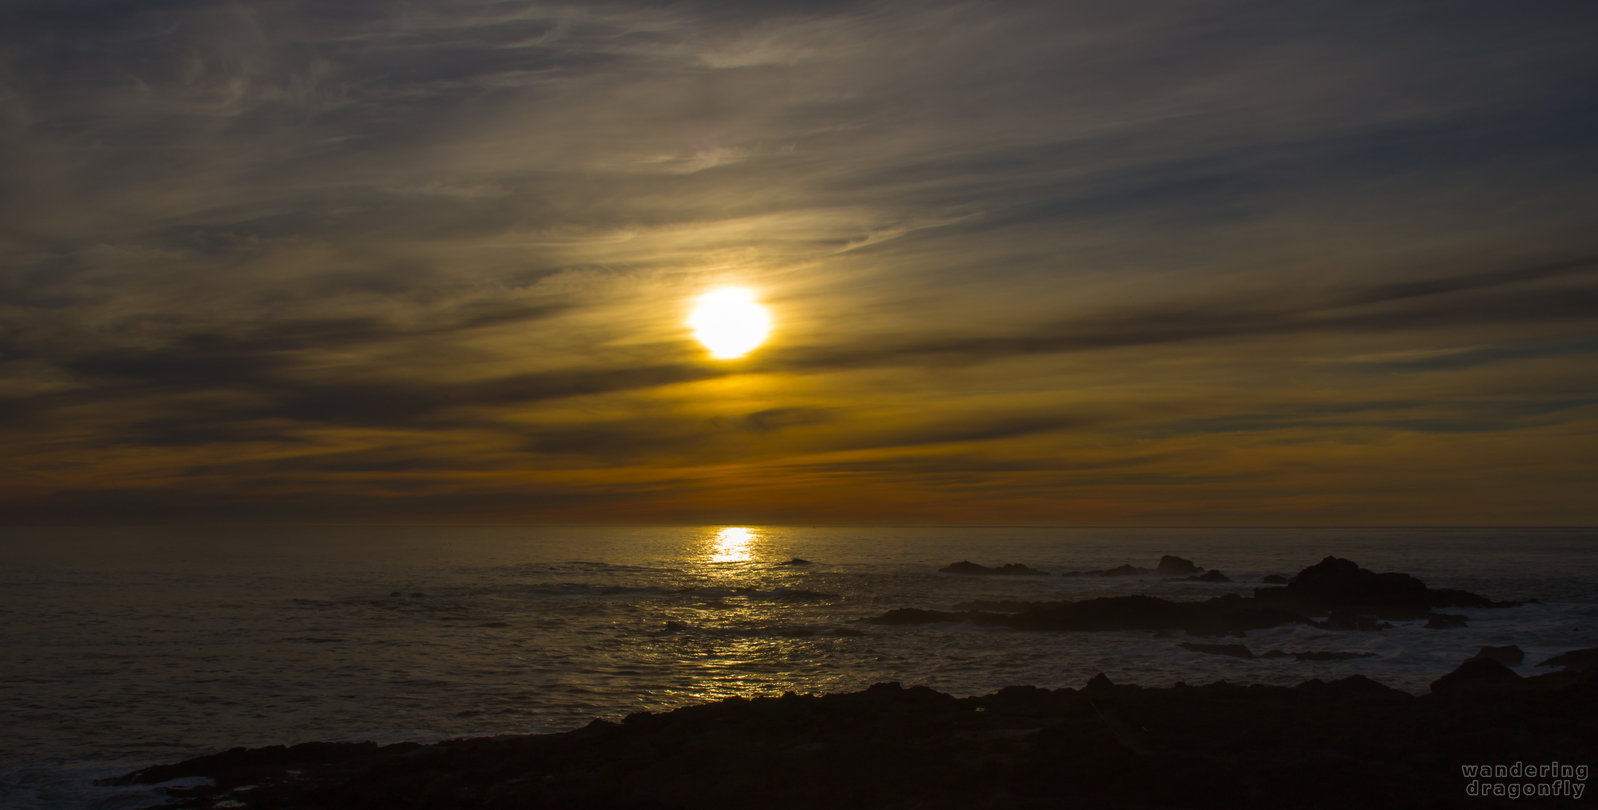 Beginning of the sunset at Sea Lion Point -- cliff, cloud, ocean, rock, sun, sunset, water